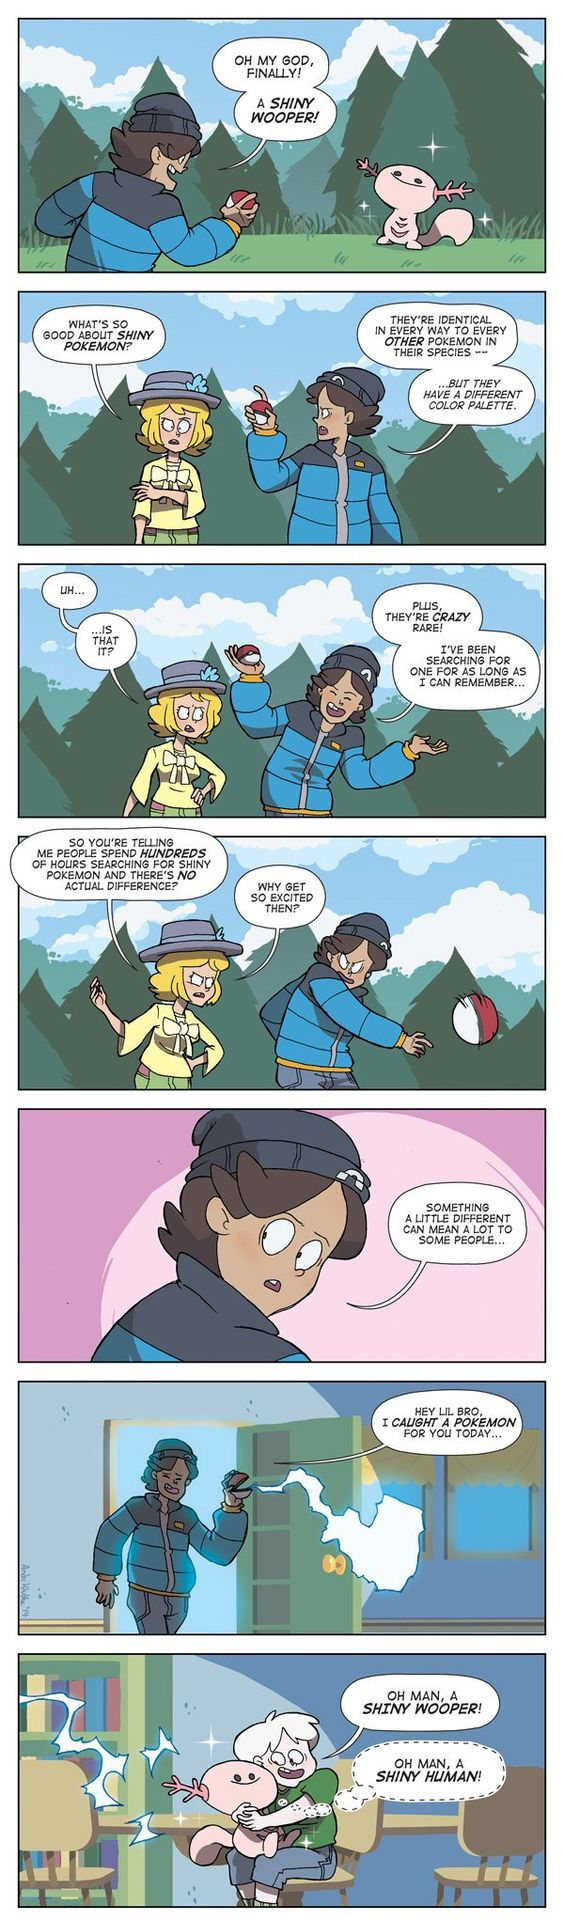 """""""The One Trainer who has a Reason for Catching Shiny Pokémon"""" #dorkly #geek #pokémon"""